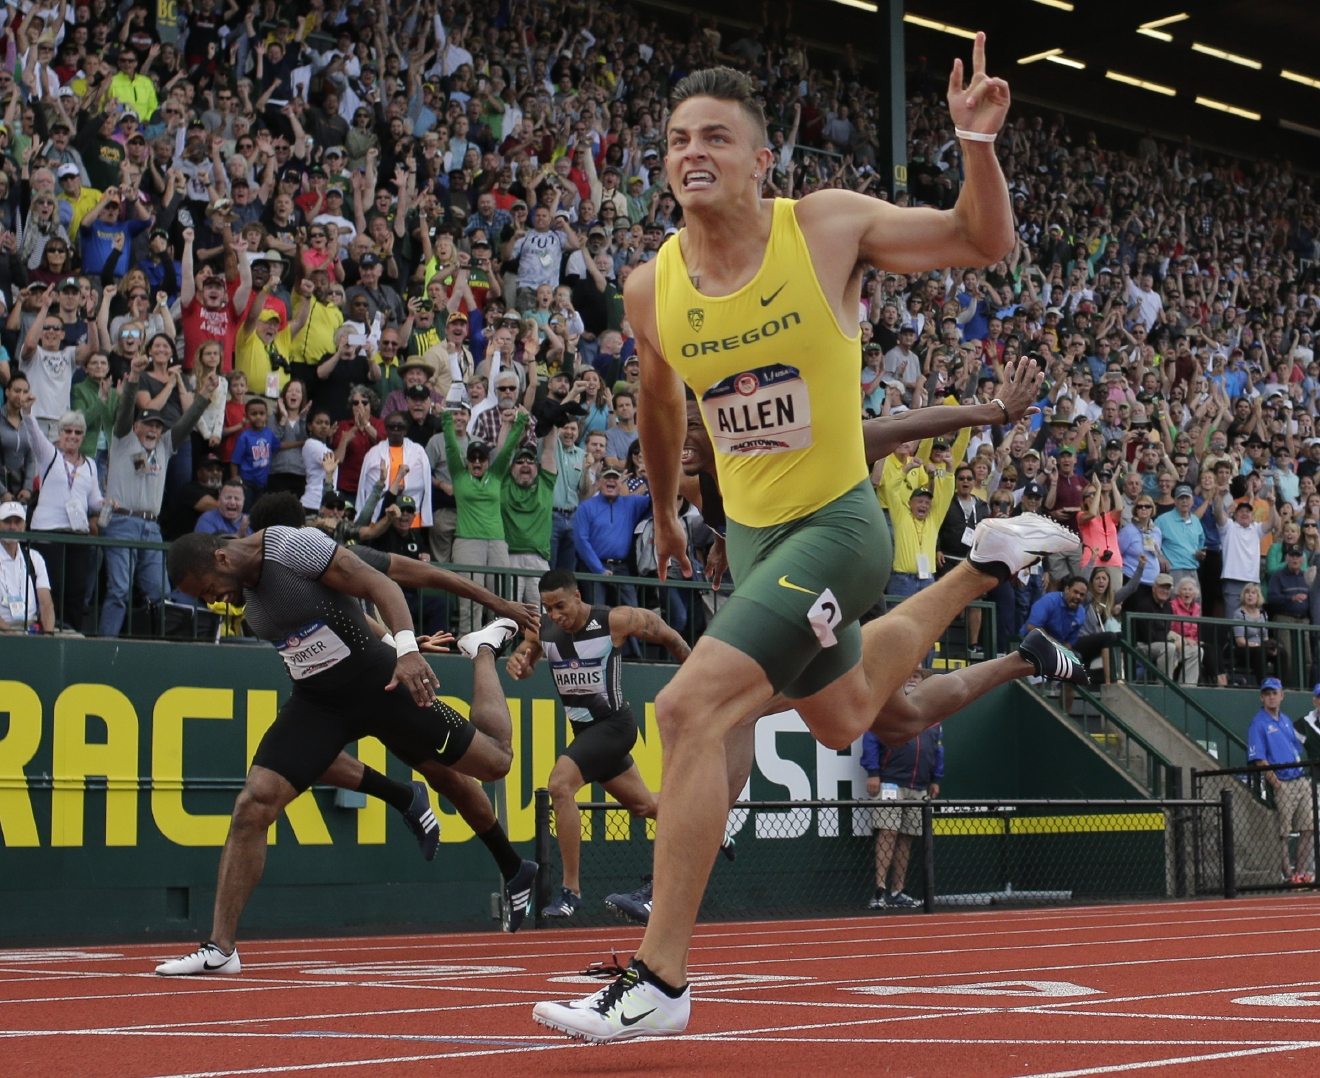 Devon Allen celebrates his win in the finals of the men's 110-meter hurdles at the U.S. Olympic Track and Field Trials, Saturday, July 9, 2016, in Eugene Ore.  (AP Photo/Matt Slocum)